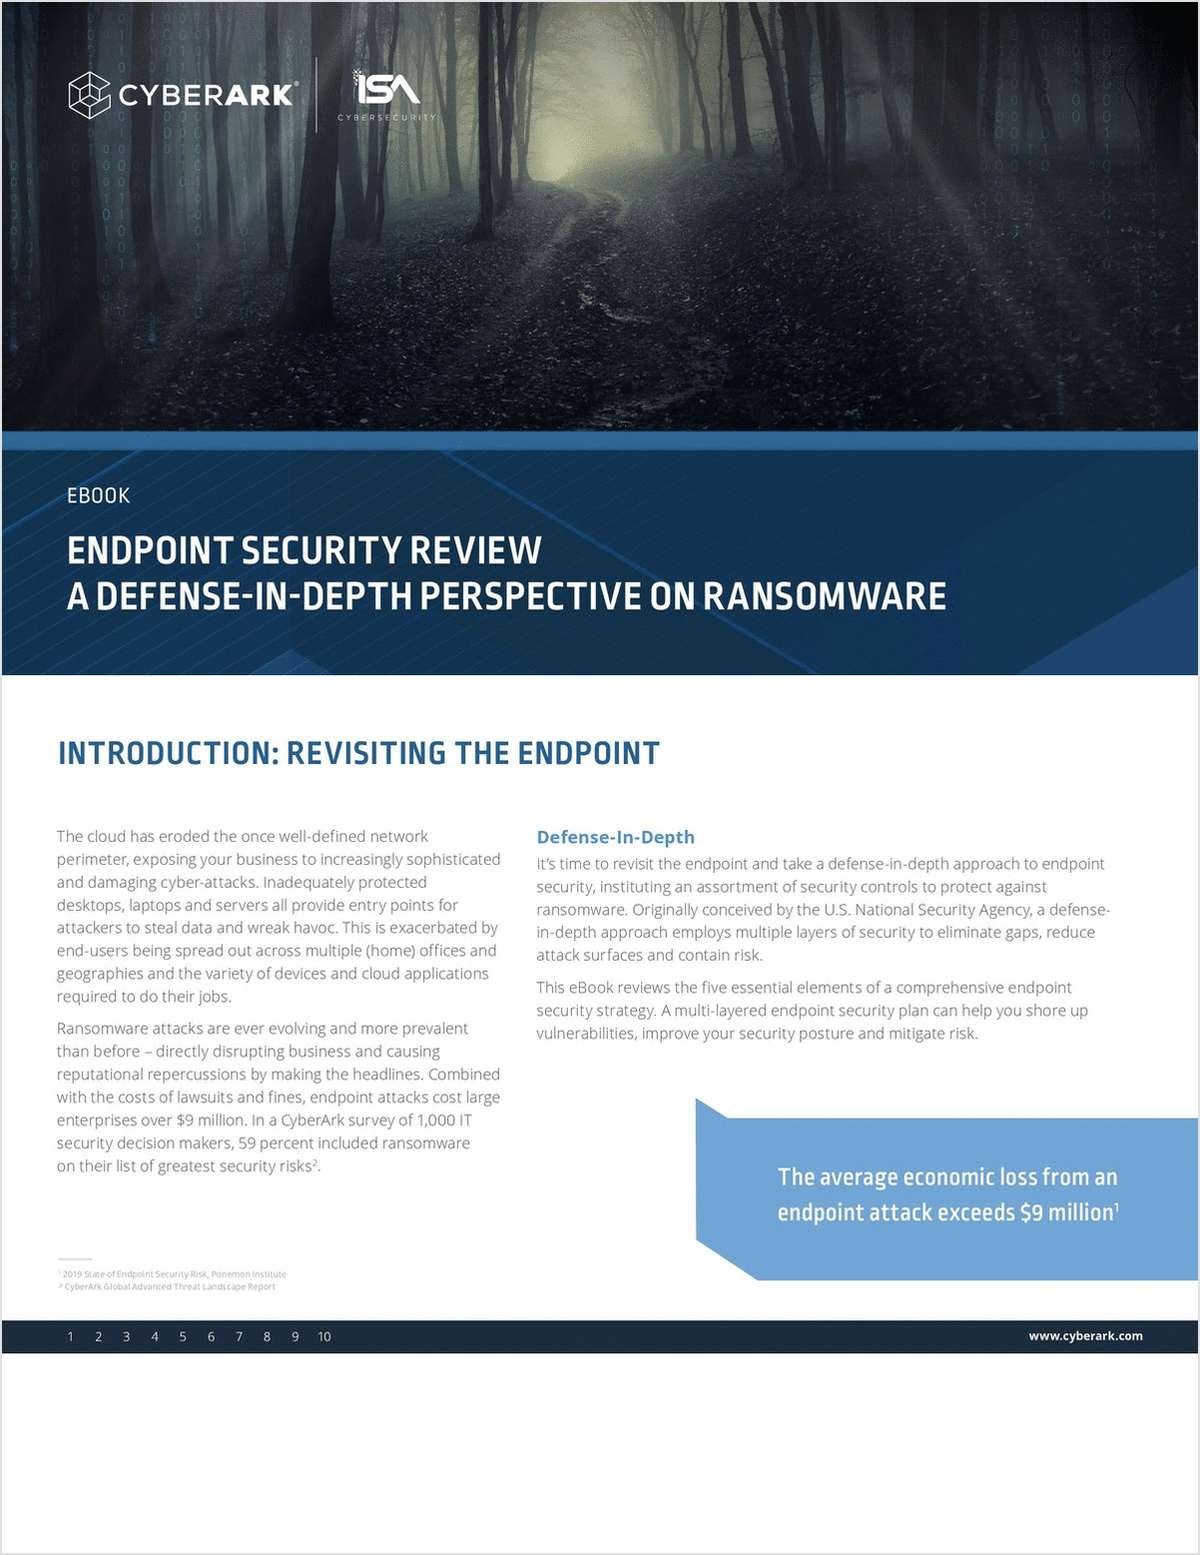 Endpoint Security Revisited: A Defense-in-Depth Perspective On Ransomware